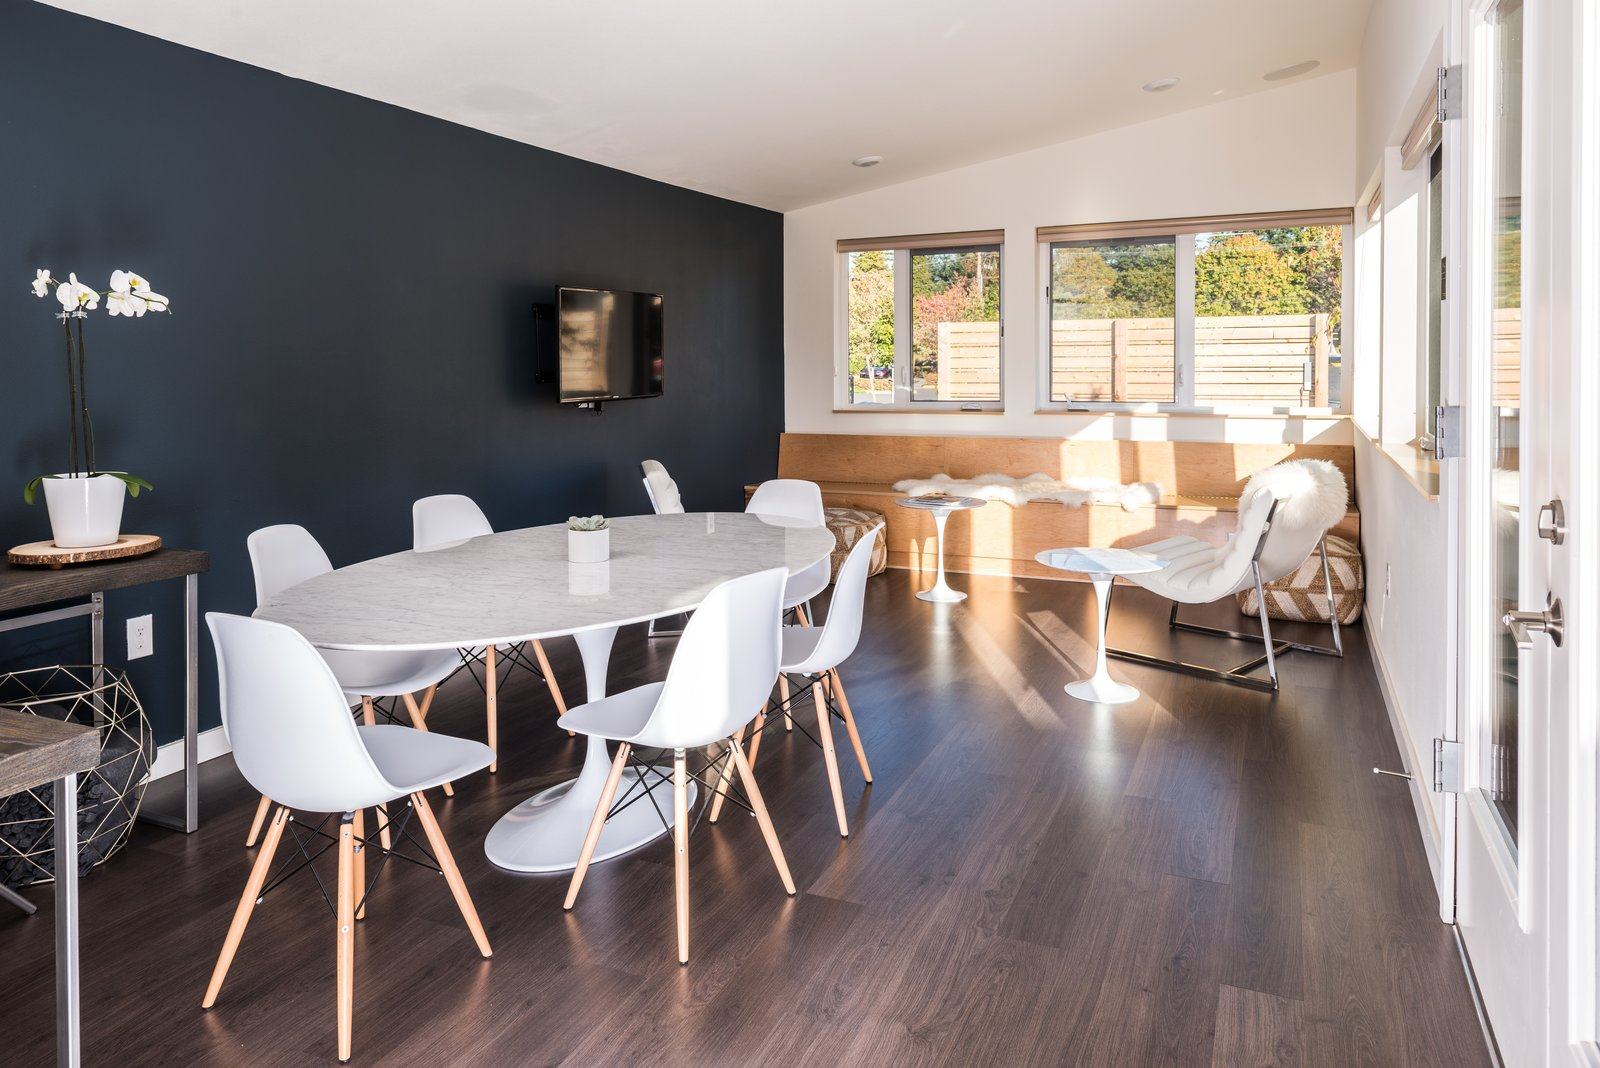 Dining Room, Ceiling Lighting, Table, Bench, Chair, Dark Hardwood Floor, and Recessed Lighting A Saarinen table and Eames chairs in the Public House.  Photo 6 of 7 in Serenity Awaits at These Prefab Cabin Rentals on Vashon Island